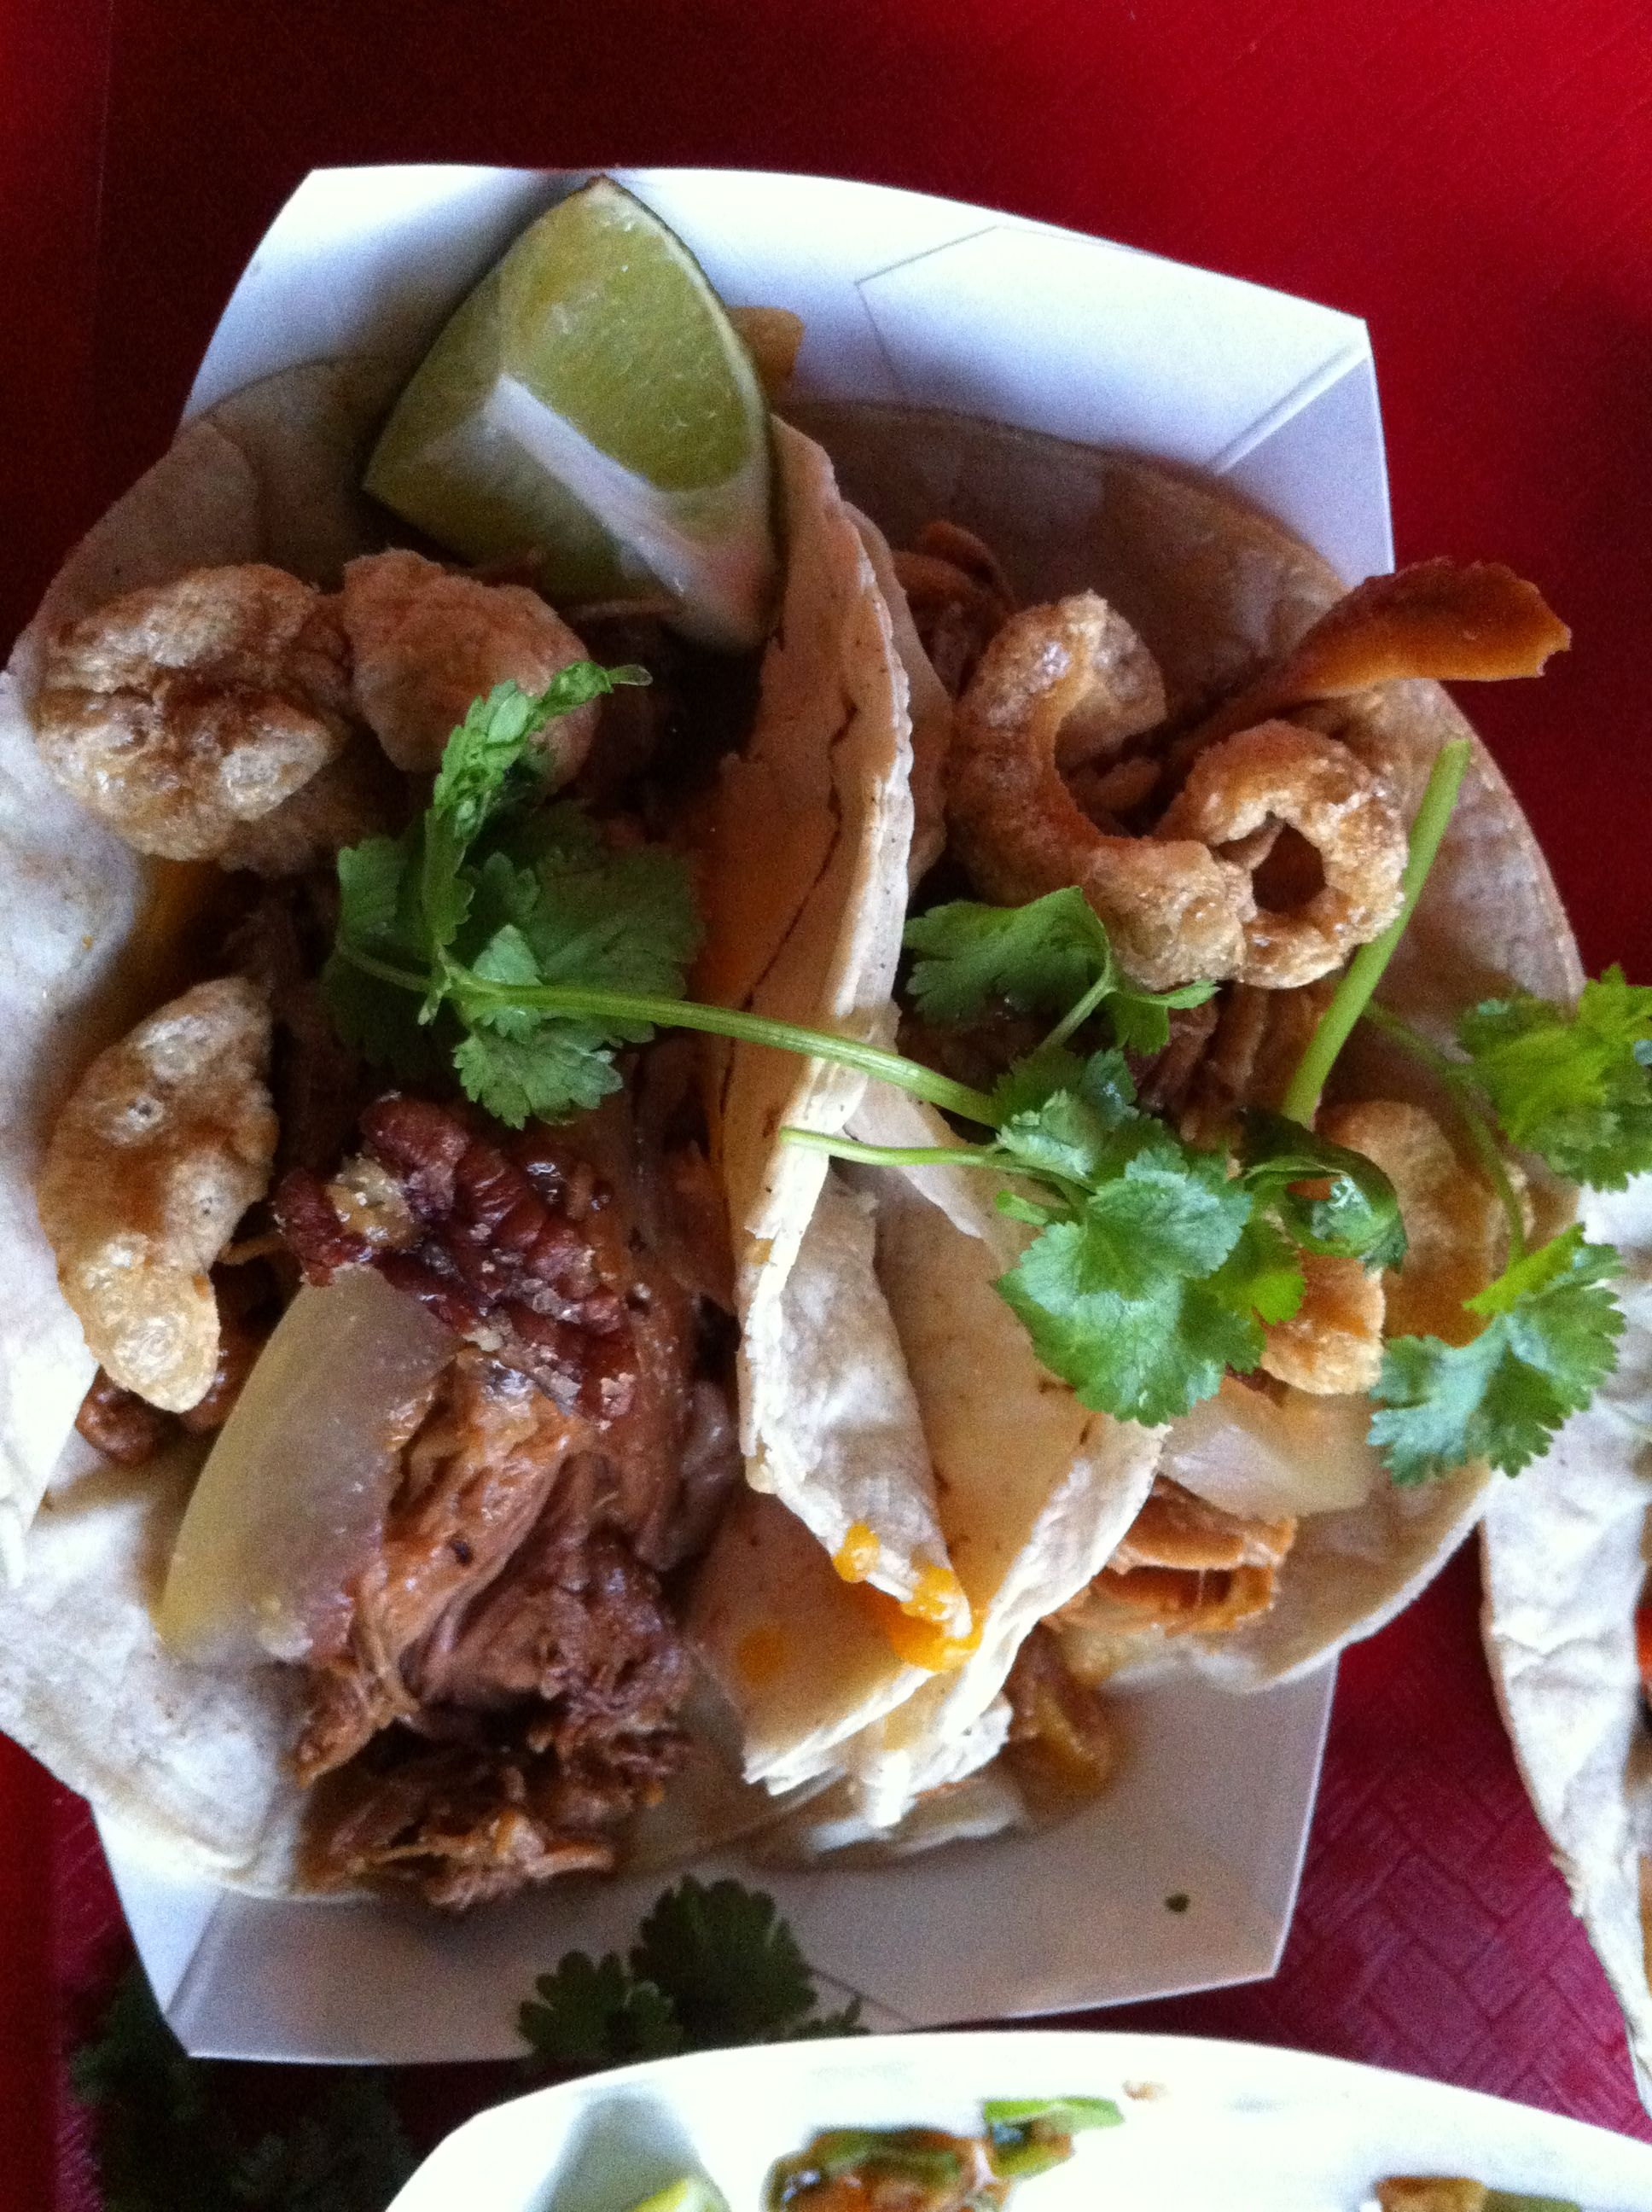 Pulled Pork Taco With---- Chicharones